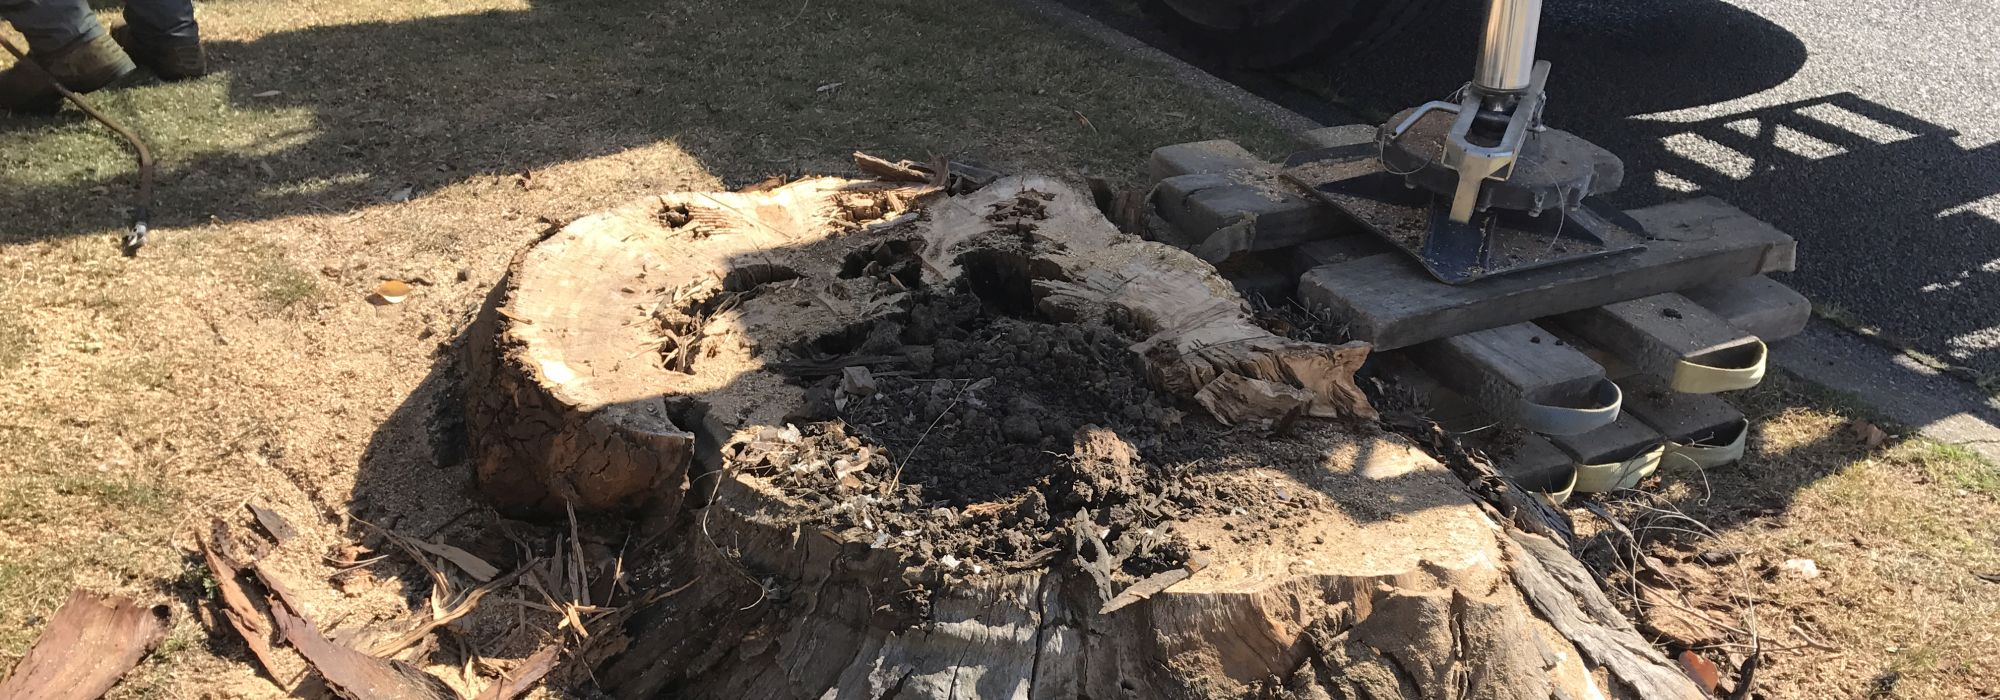 stump-removal-by-jk-cooper-tree-services